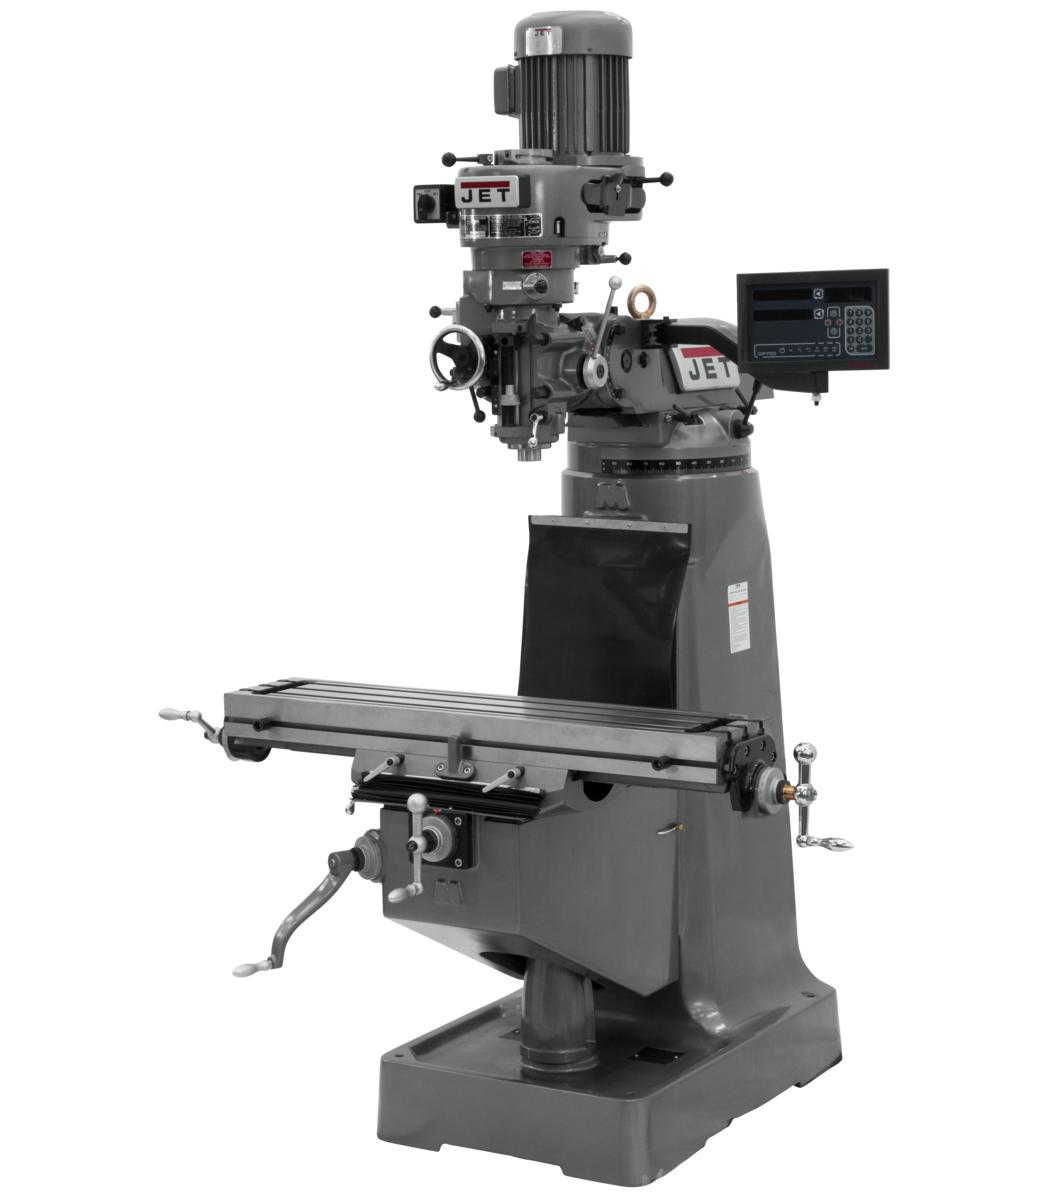 JTM-2 Mill With 3-Axis Newall DP700 DRO (Quill)